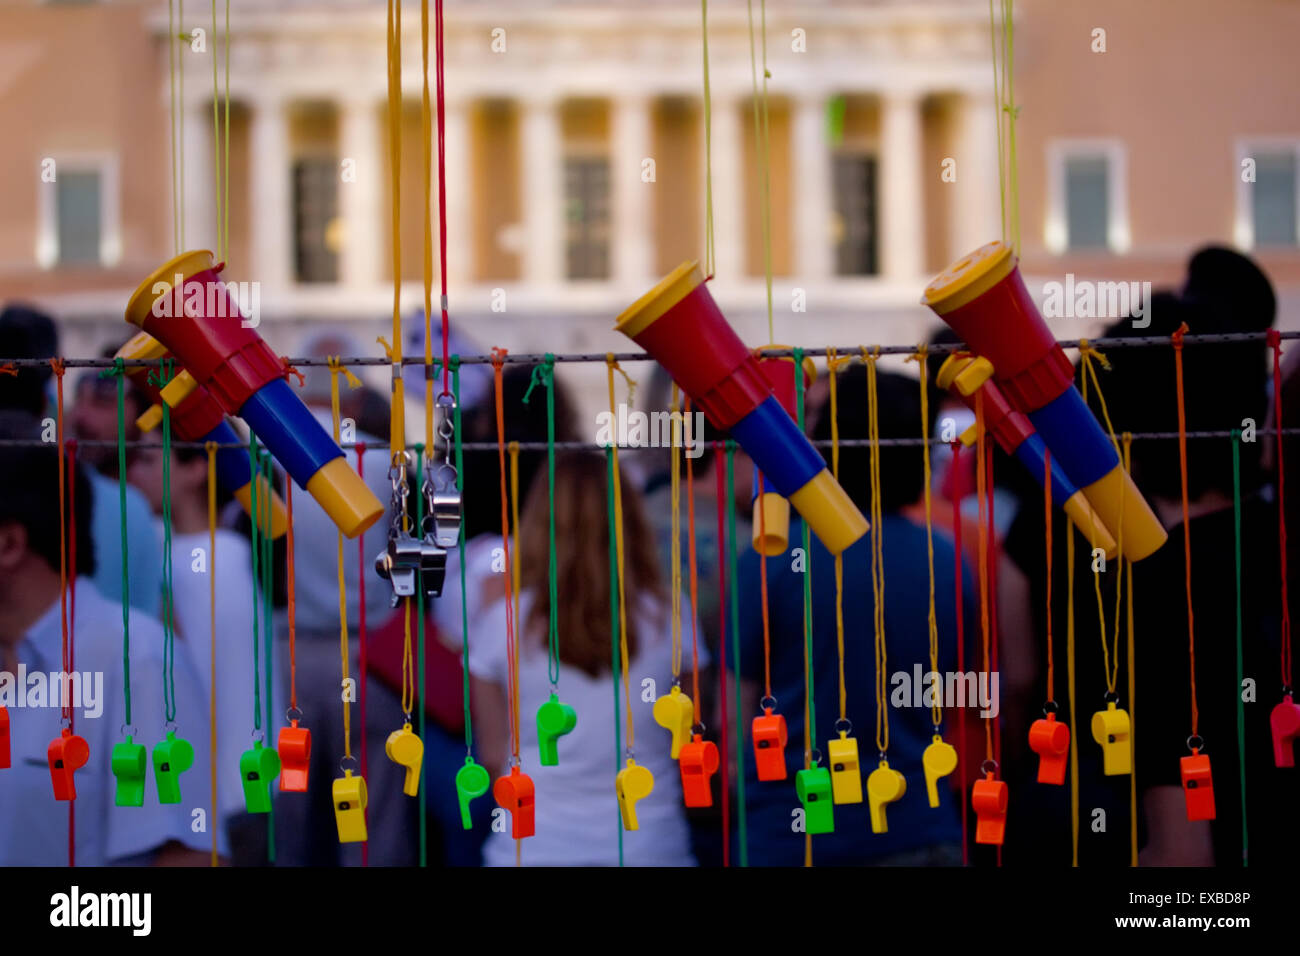 Protesters sound arsenal, hanging whistles, vuvuzelas opposite Greek parliament, at the antiausterity measure protests - Stock Image